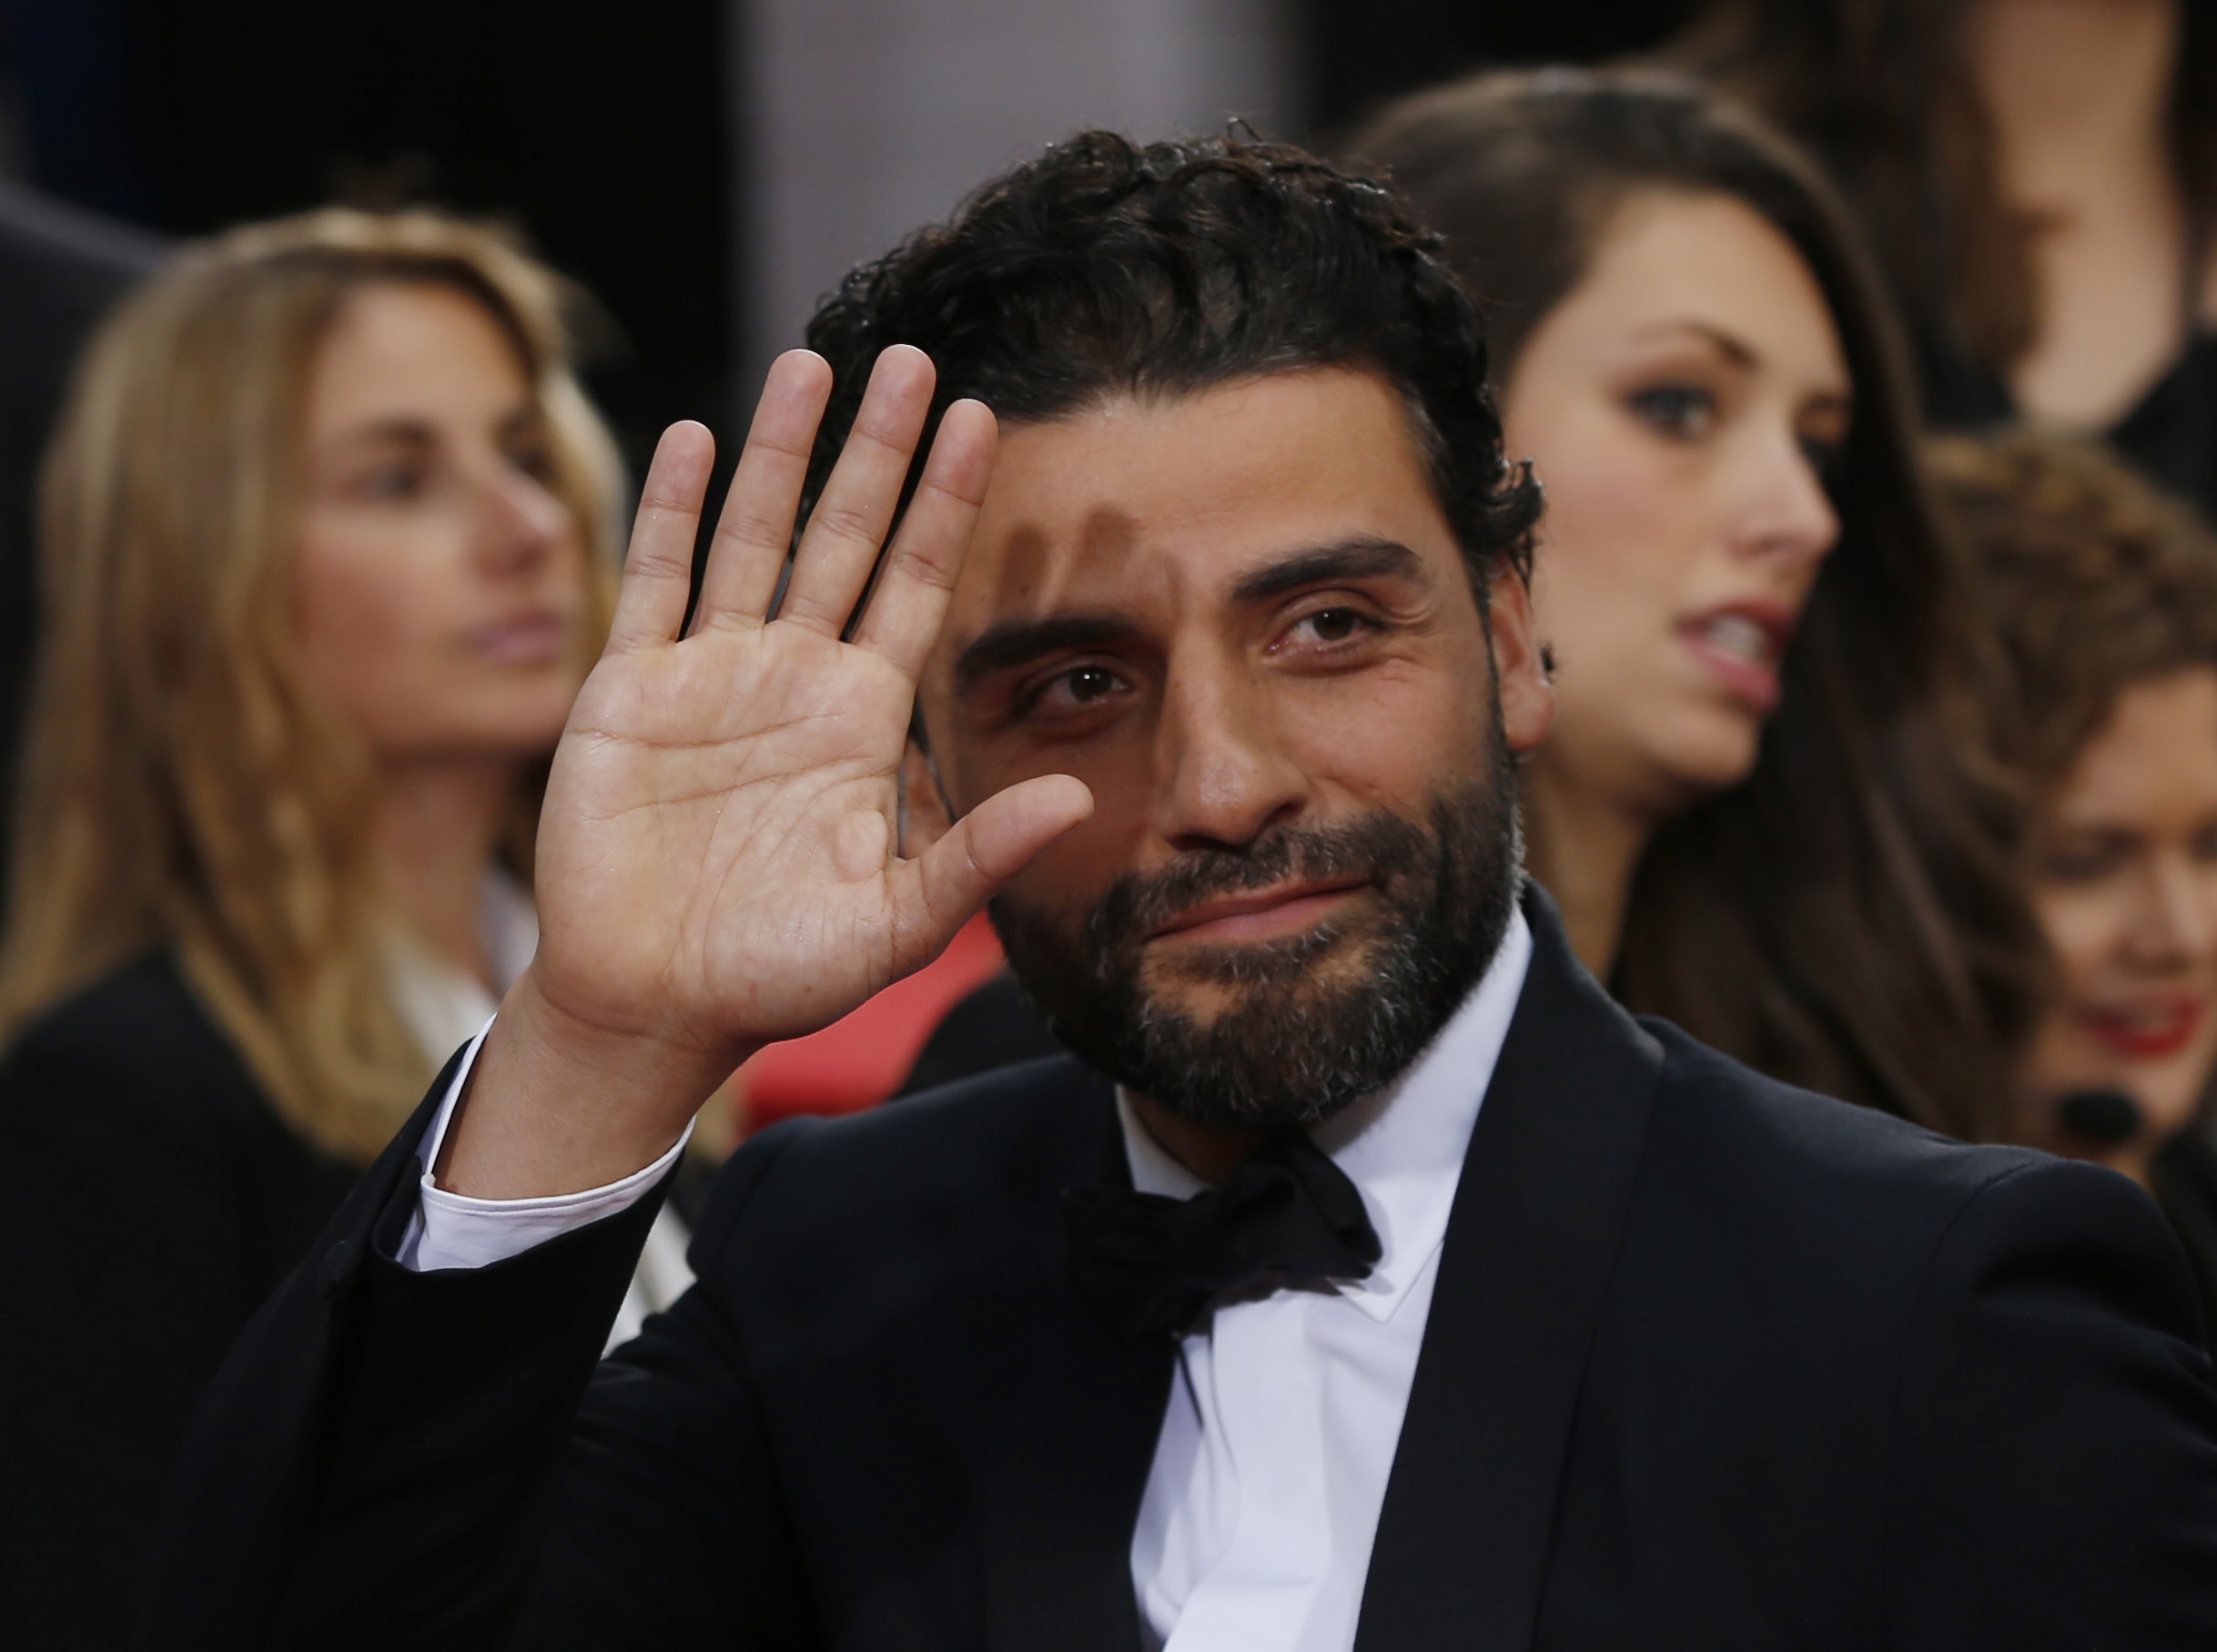 Actor Oscar Isaac arrives at the 73rd Golden Globe Awards in Beverly Hills, California January 10, 2016. REUTERS/Mario Anzuoni - RTX21ROB